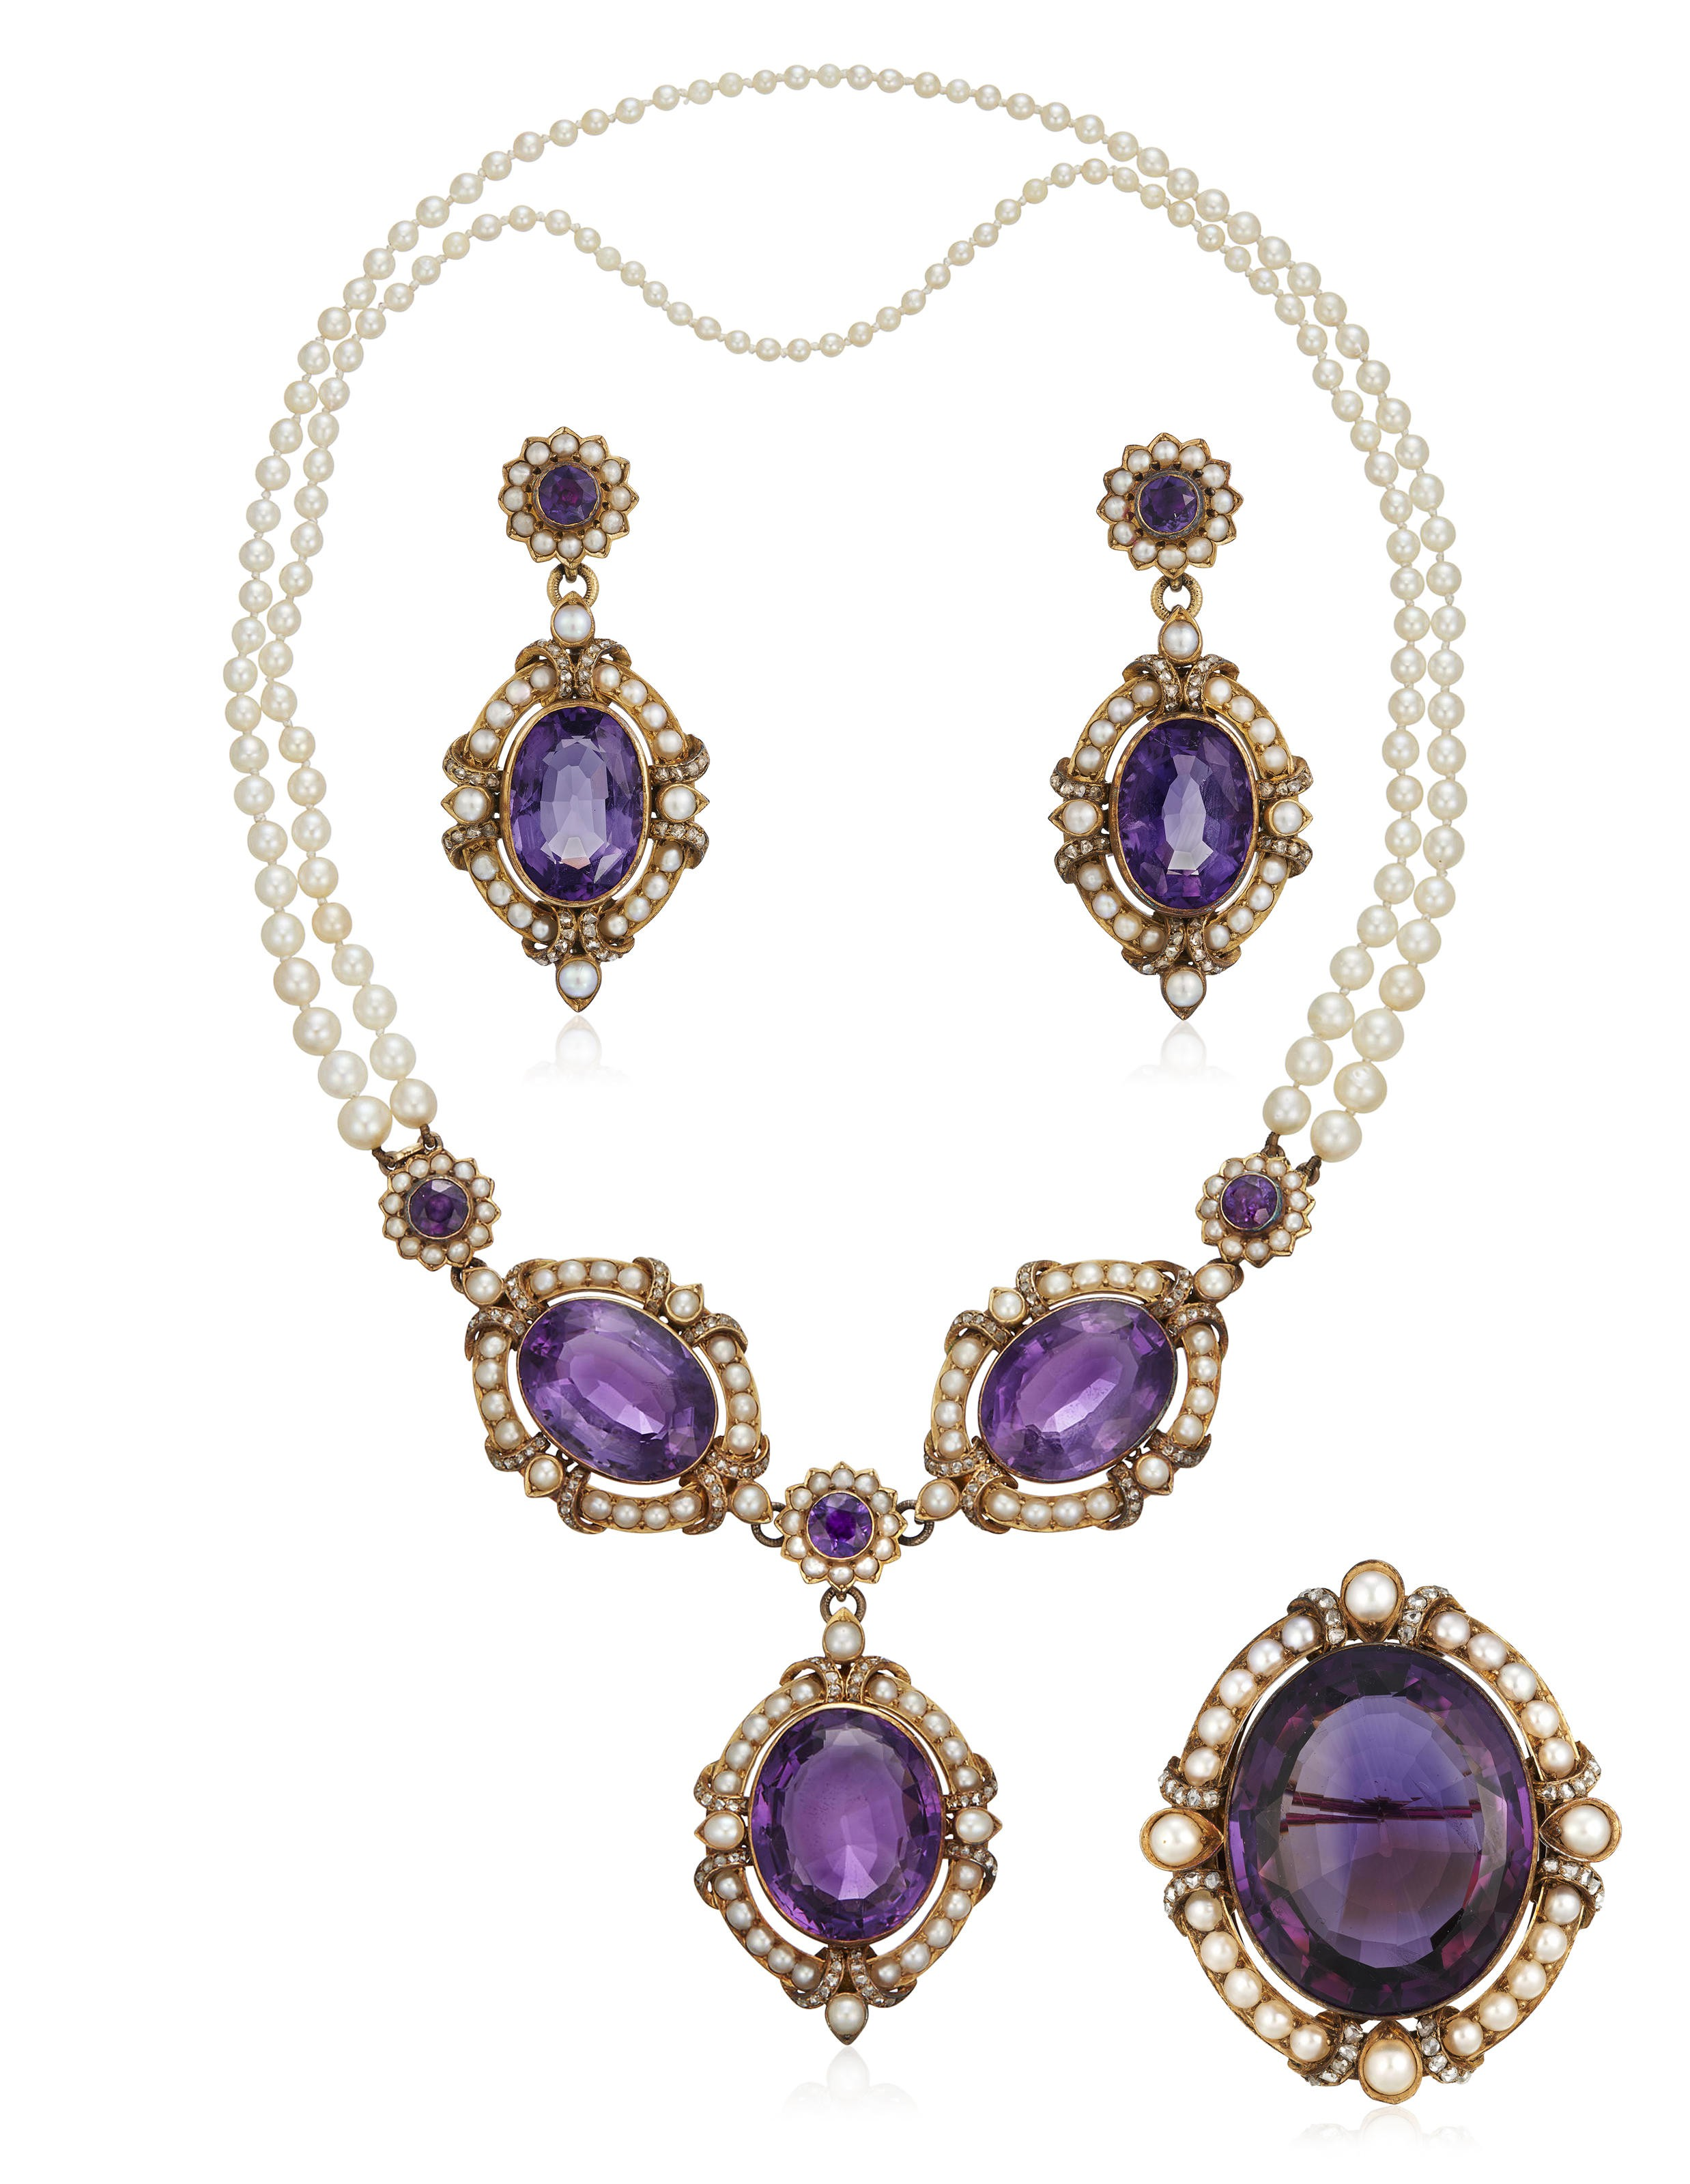 Amethyst and pearl necklace set AMETHYST And PEARL NECKLACE